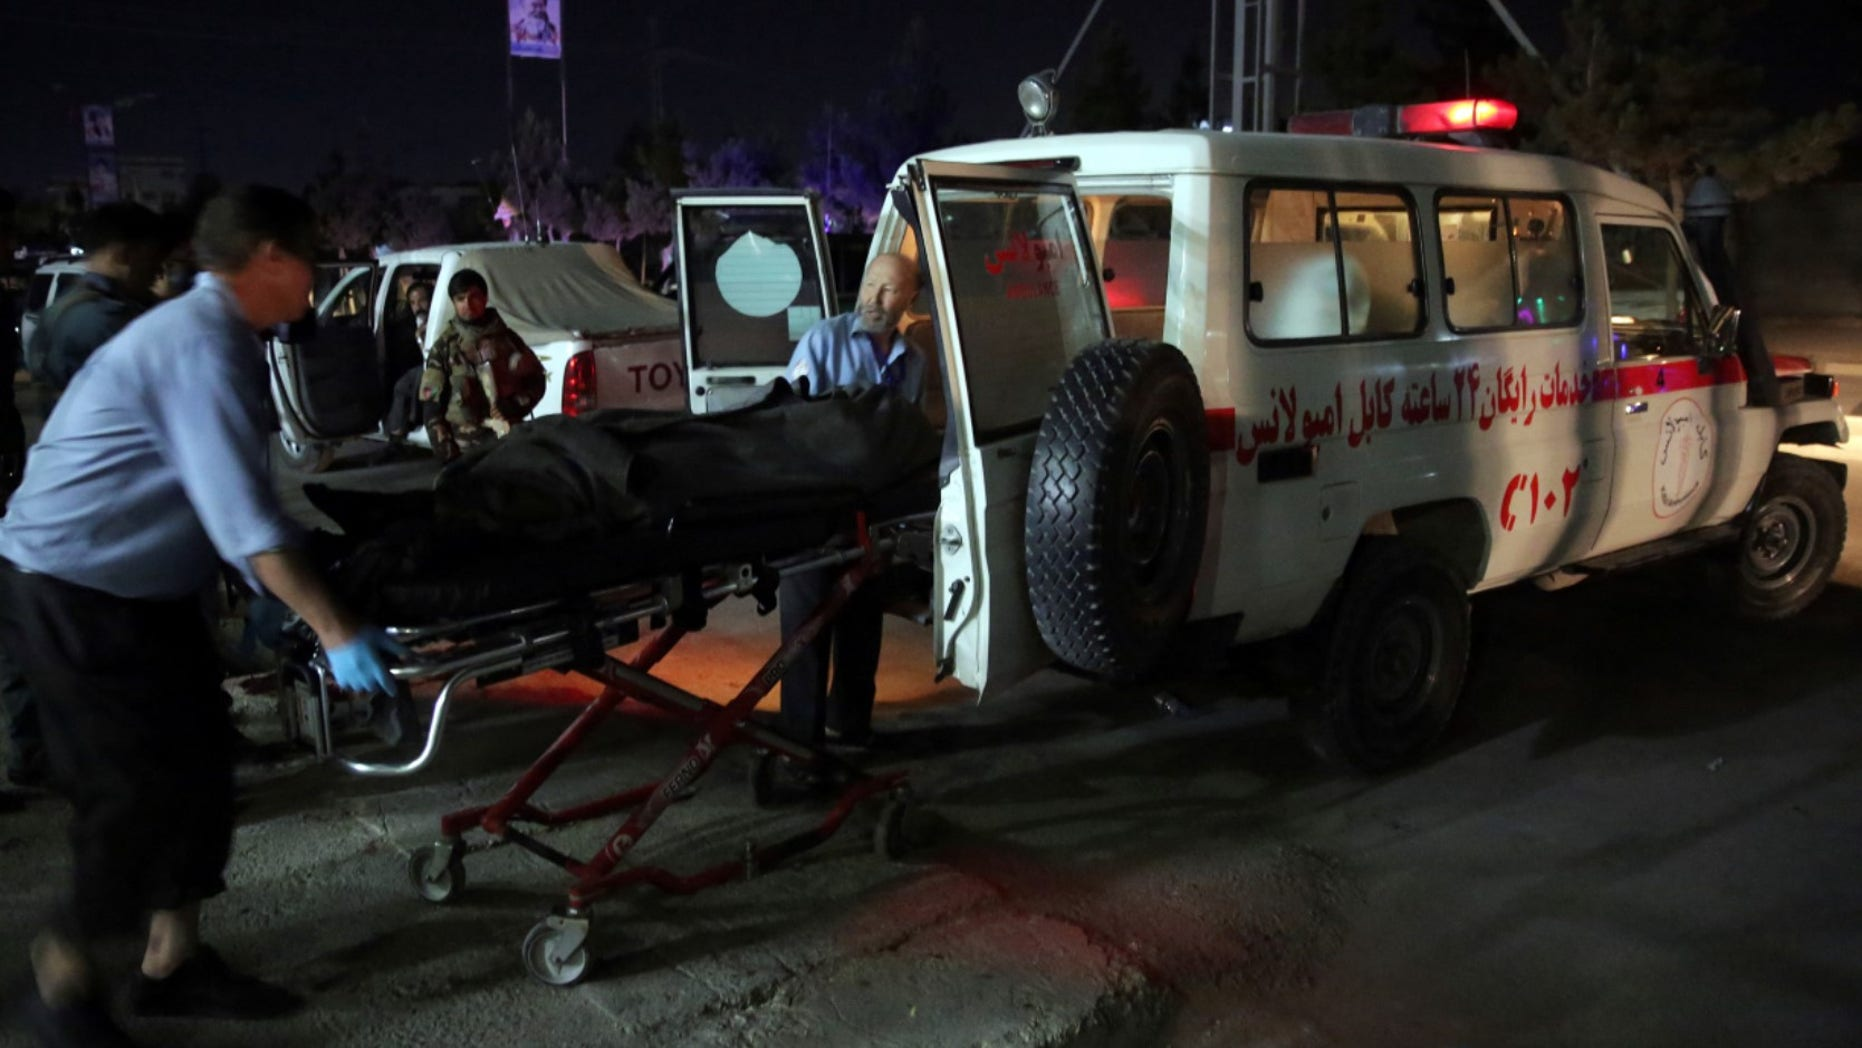 Medic personnel transport the body of a victim into an ambulance at the site of a suicide attack on a Shiites mosque in Kabul, Afghanistan, Thursday, June 15, 2017. A suicide bomber struck outside a Shiite mosque in the Afghan capital Kabul late Thursday night, killing a leader of Afghanistan's ethnic Hazaras, Hajji Ramazan Hussainzada, and others. (AP Photos/Massoud Hossaini)